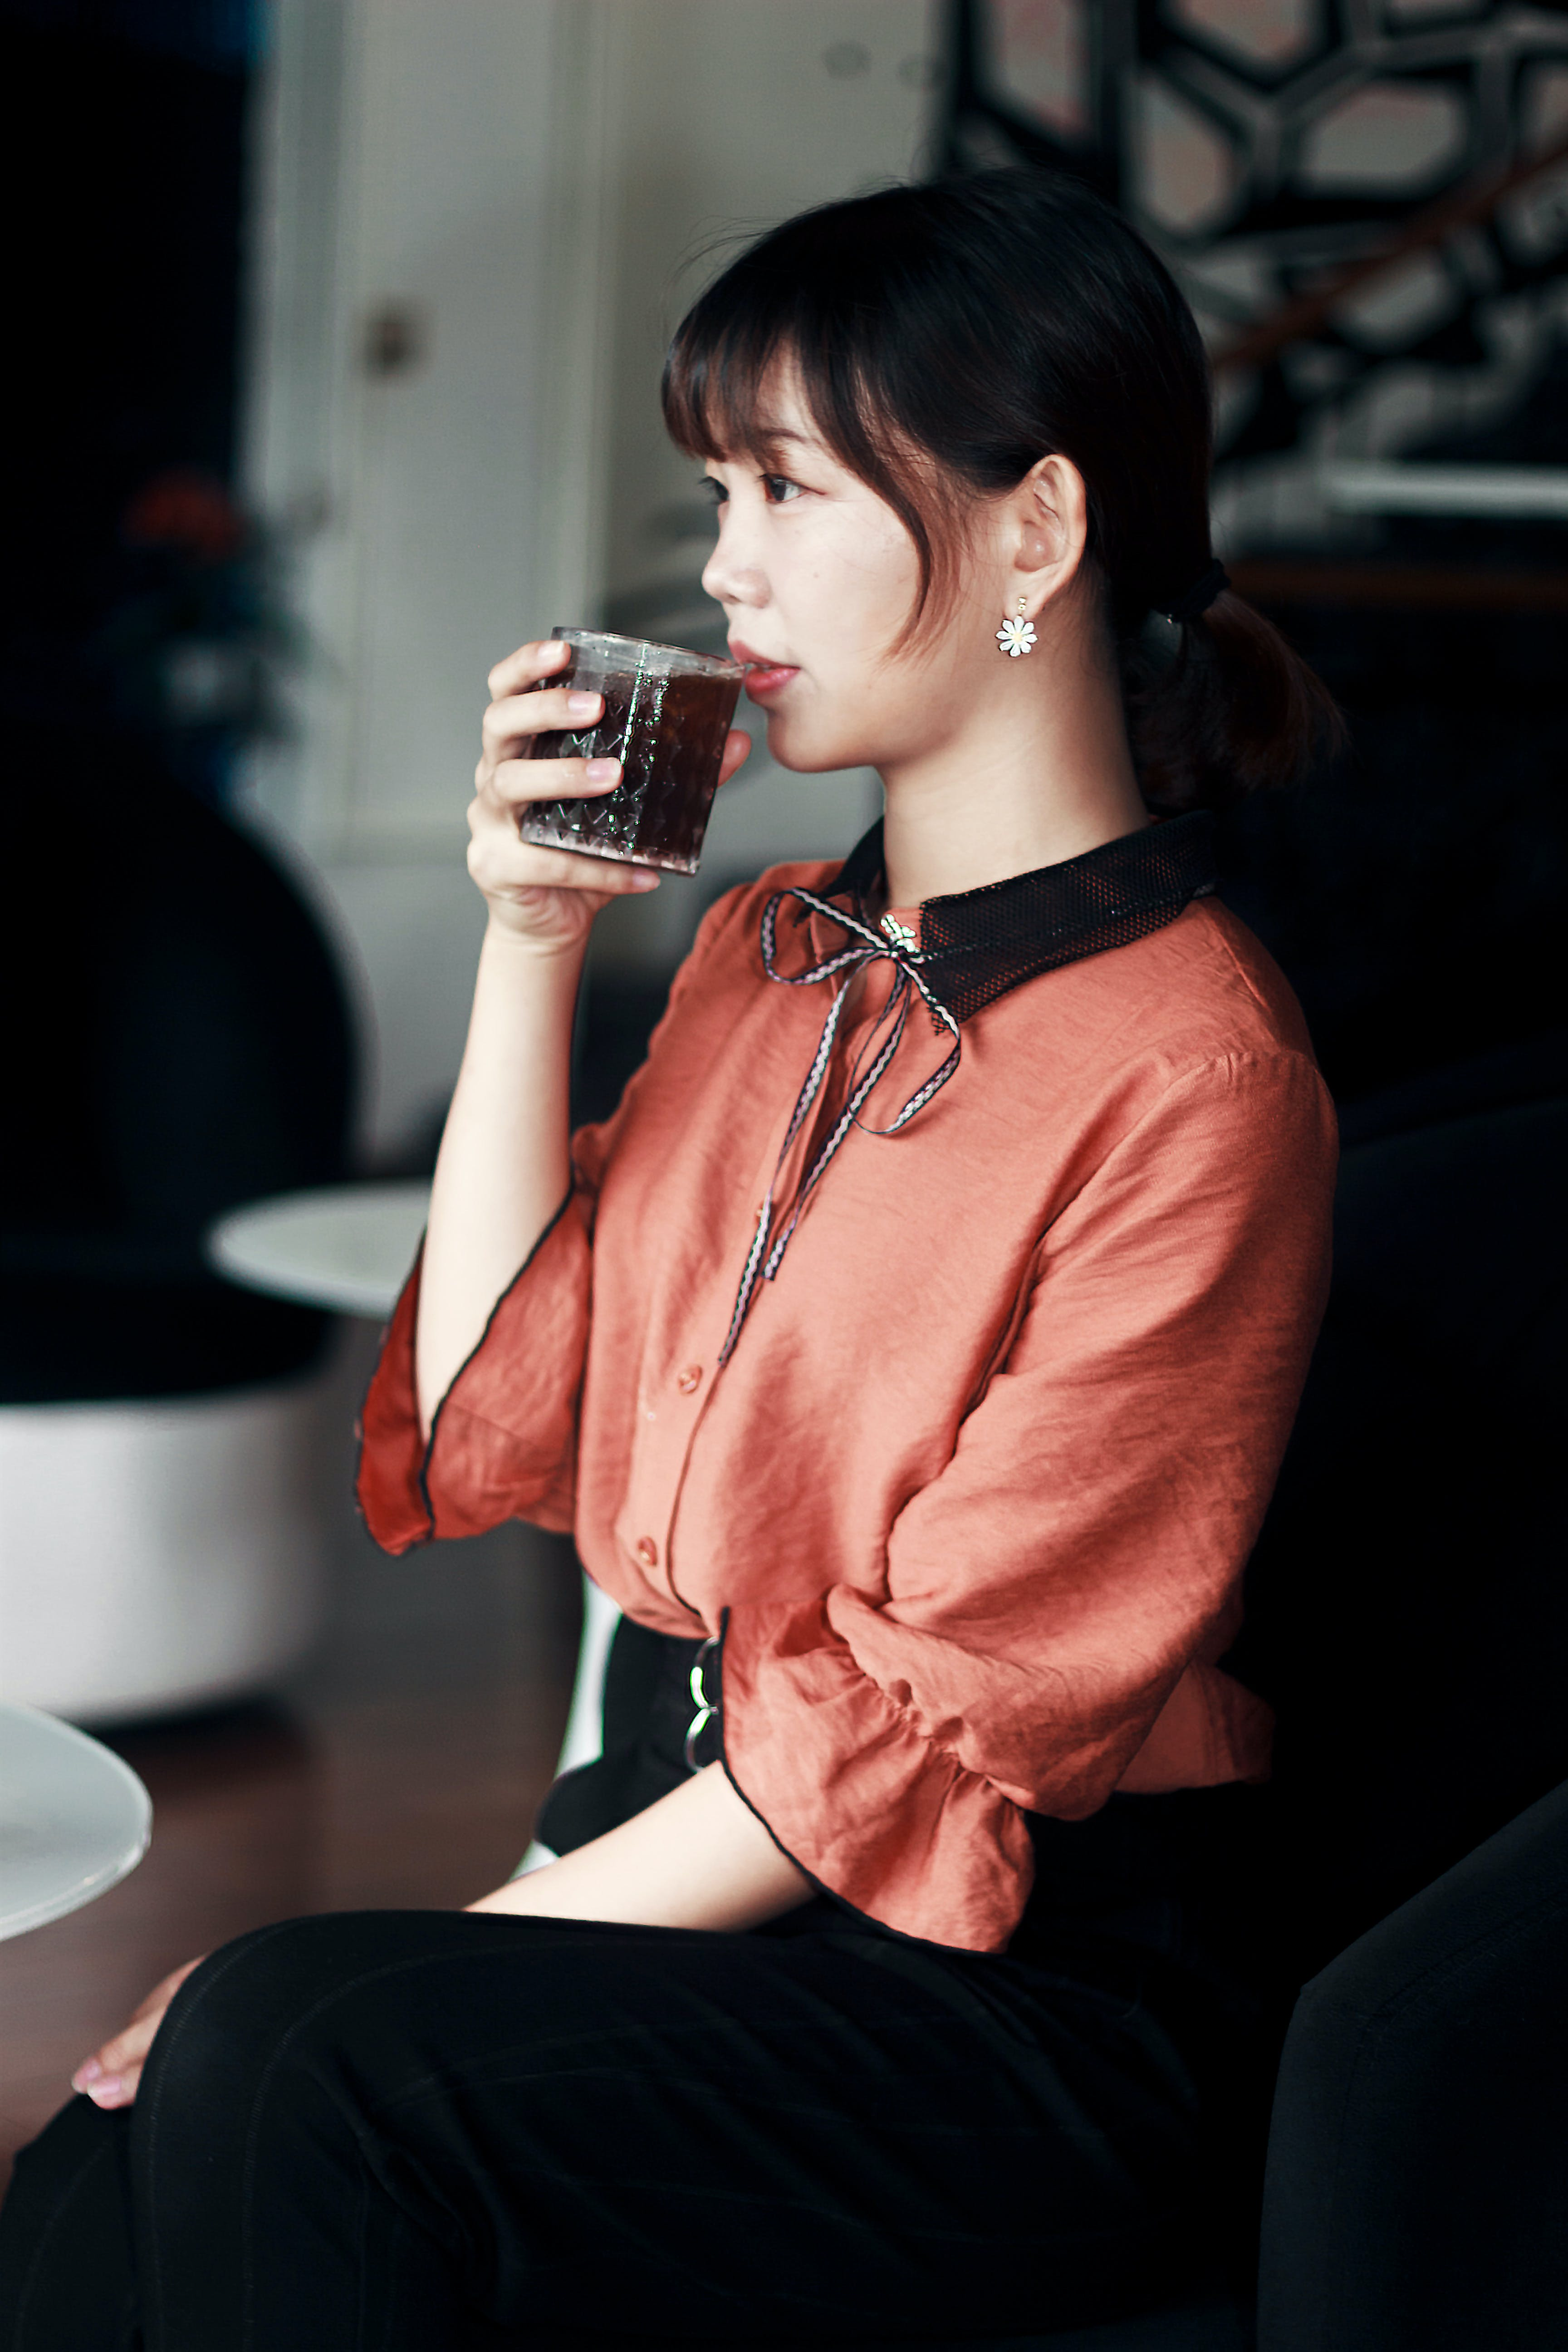 Woman in Pink and Black Dress Drinking Cola